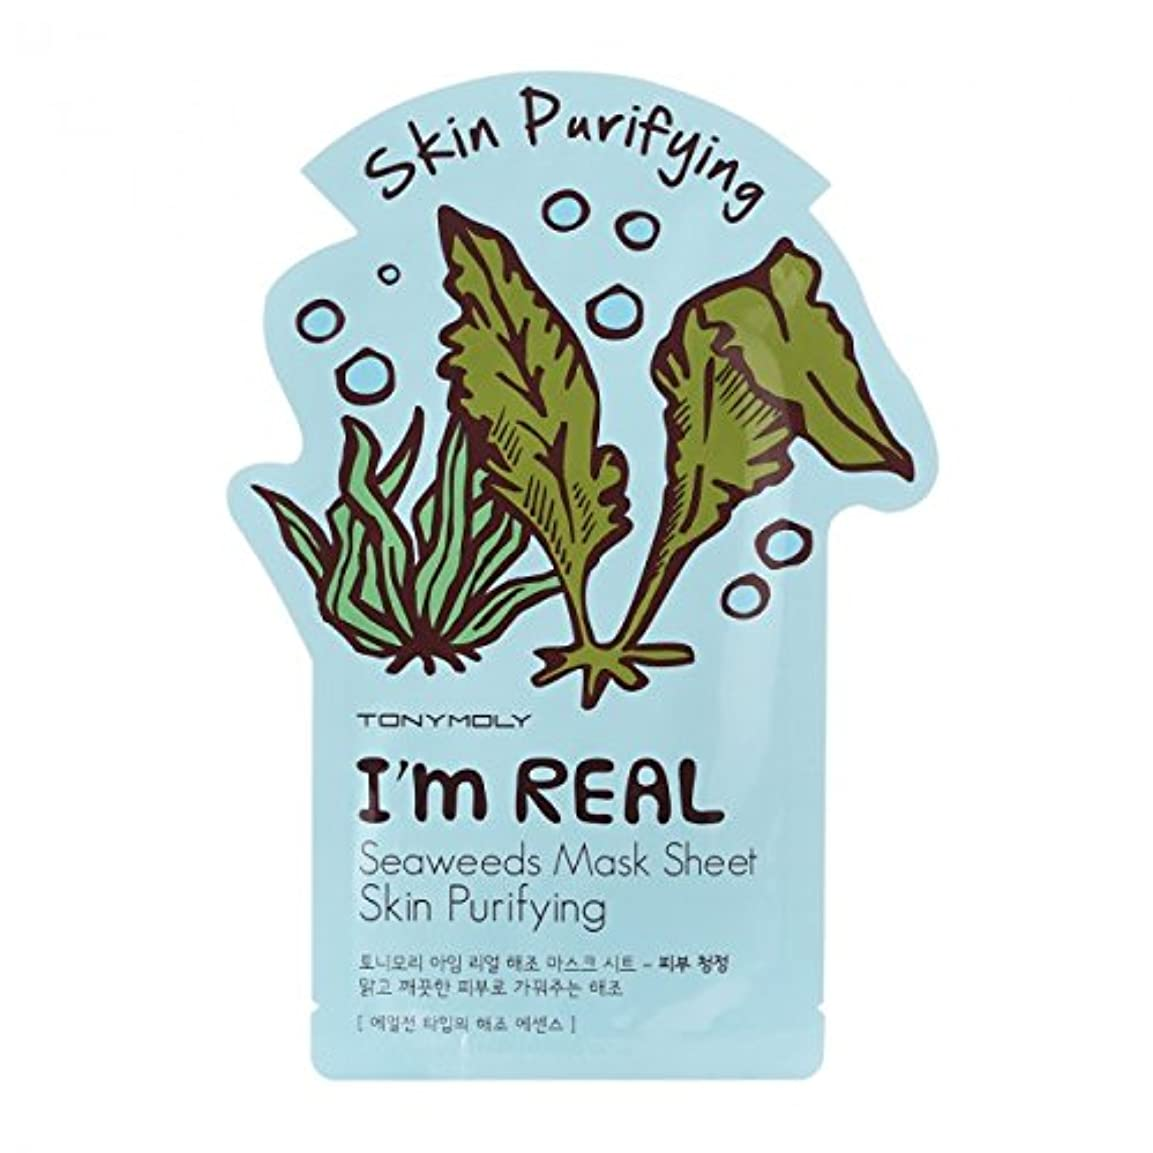 地域エクスタシー砦(6 Pack) TONYMOLY I'm Real Seaweeds Mask Sheet Skin Purifying (並行輸入品)